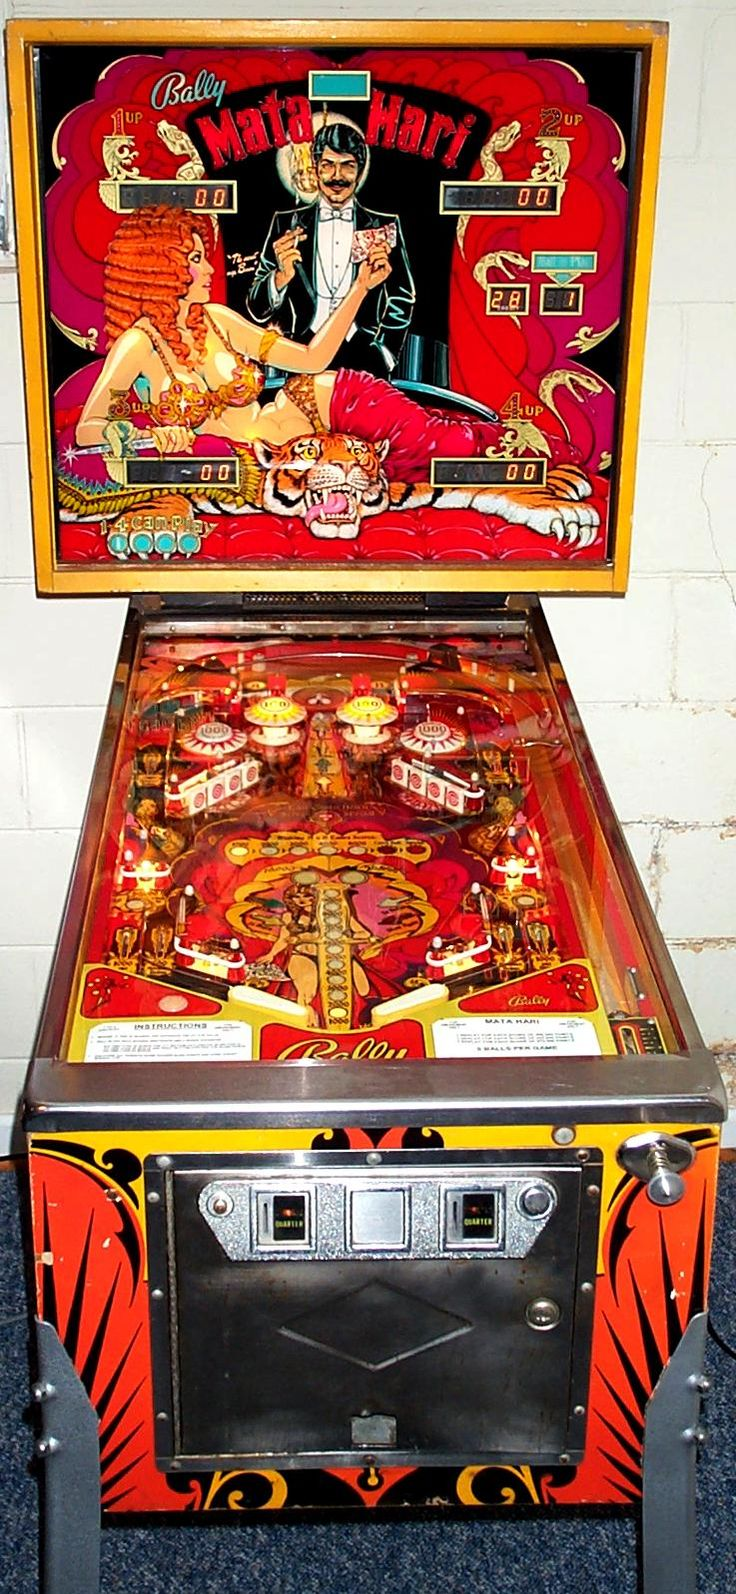 Mata Hari pinball machine made by Bally